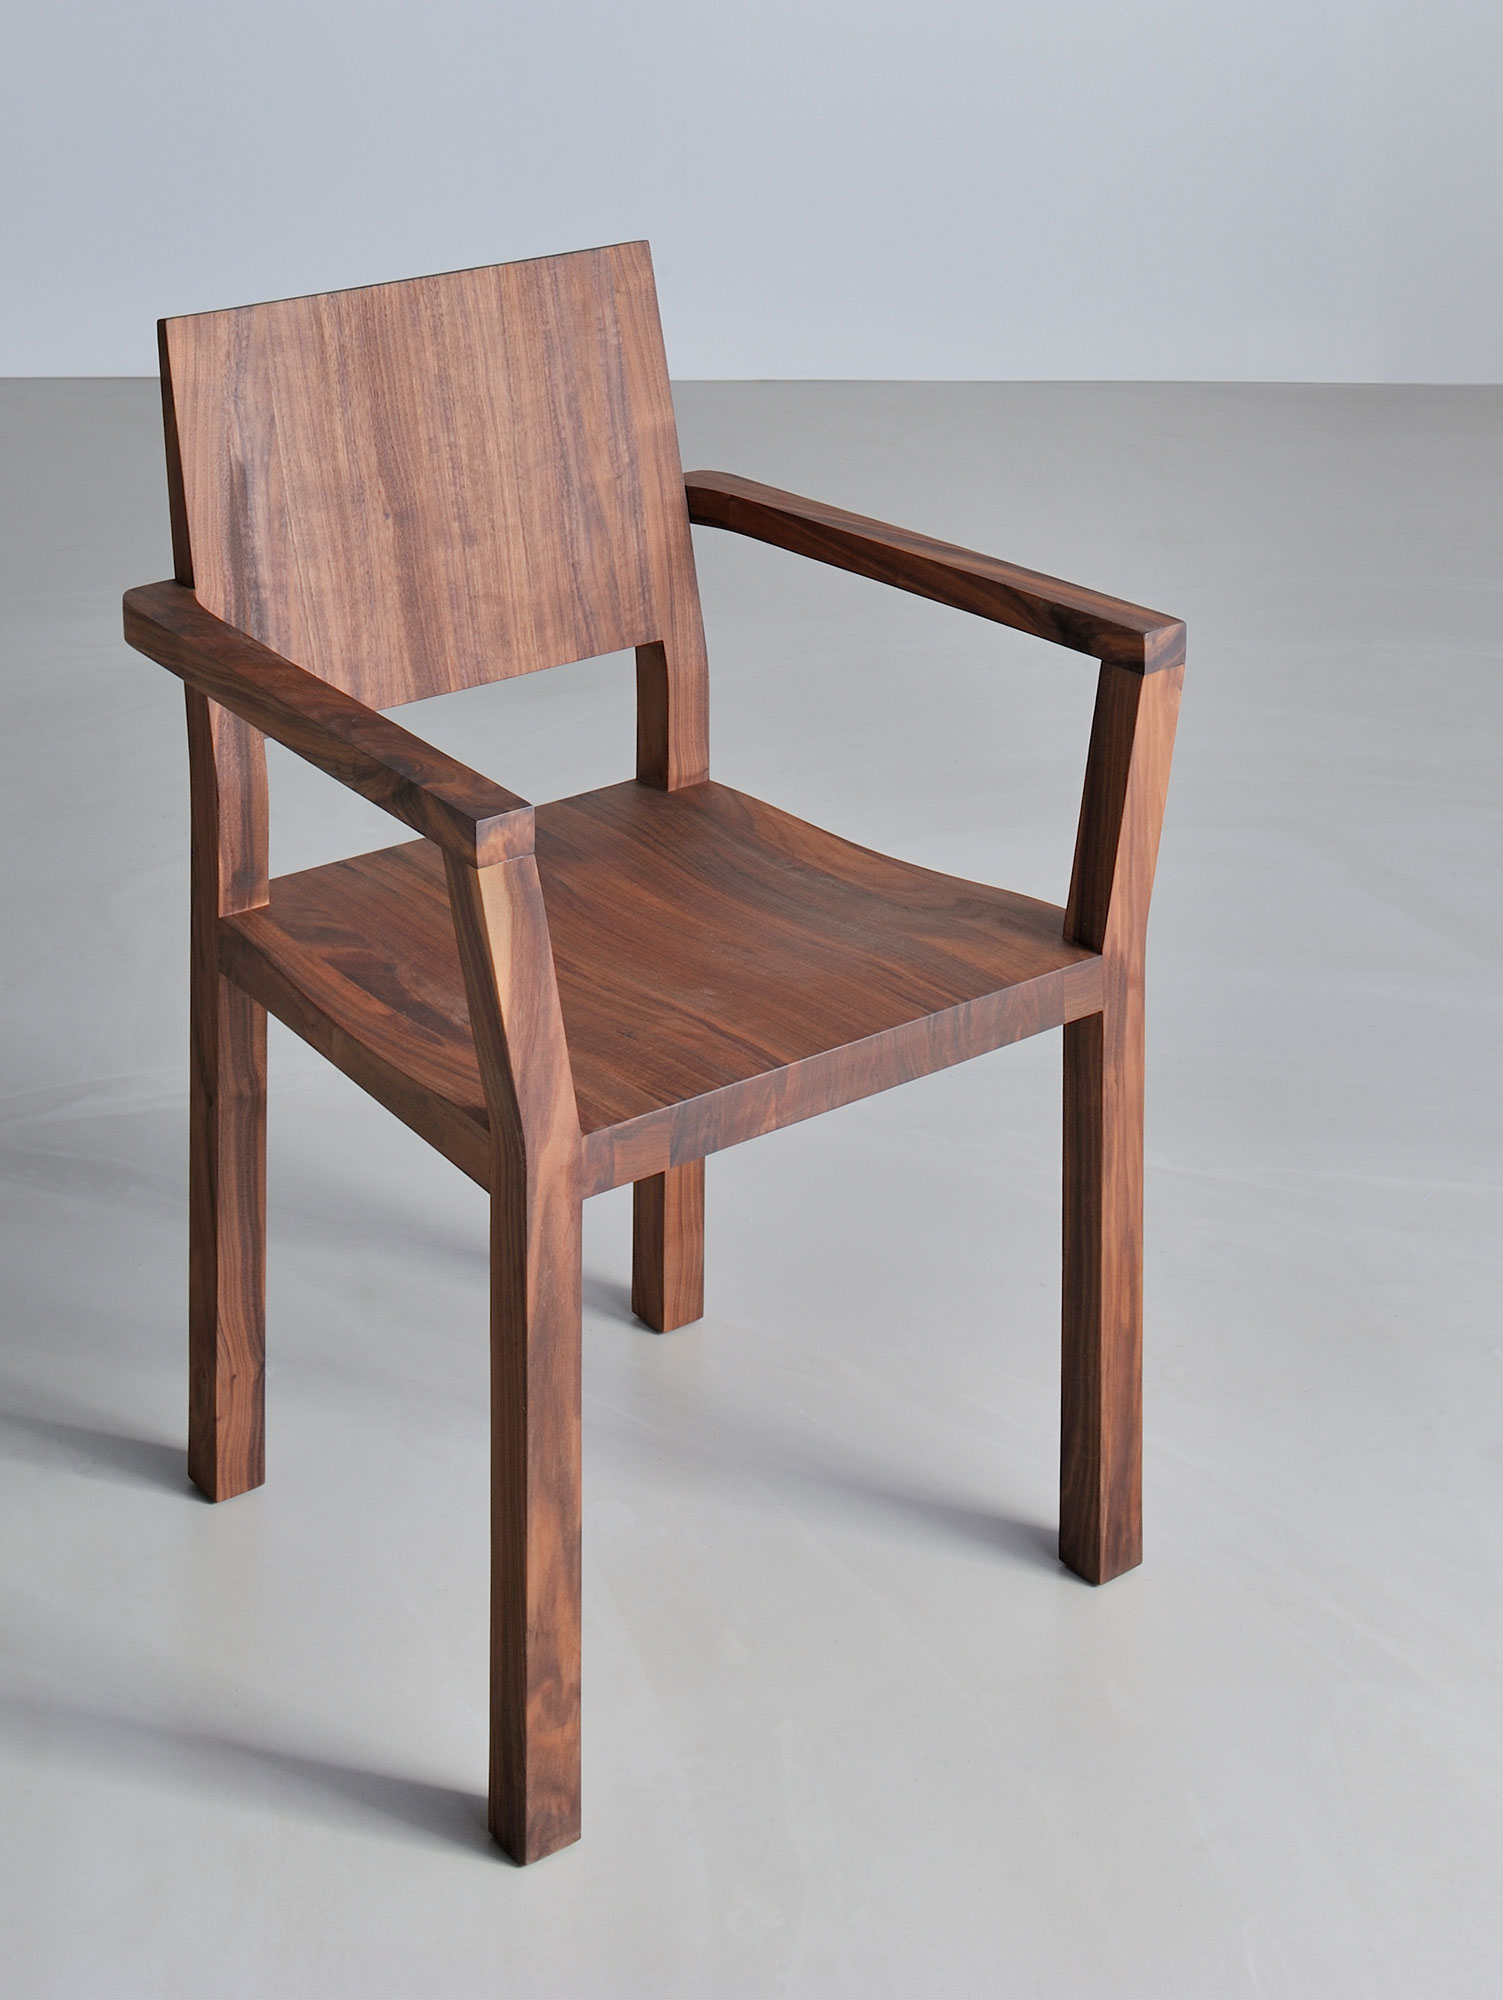 Solid Wood Armchair TAU-A 3330a custom made in solid wood by vitamin design